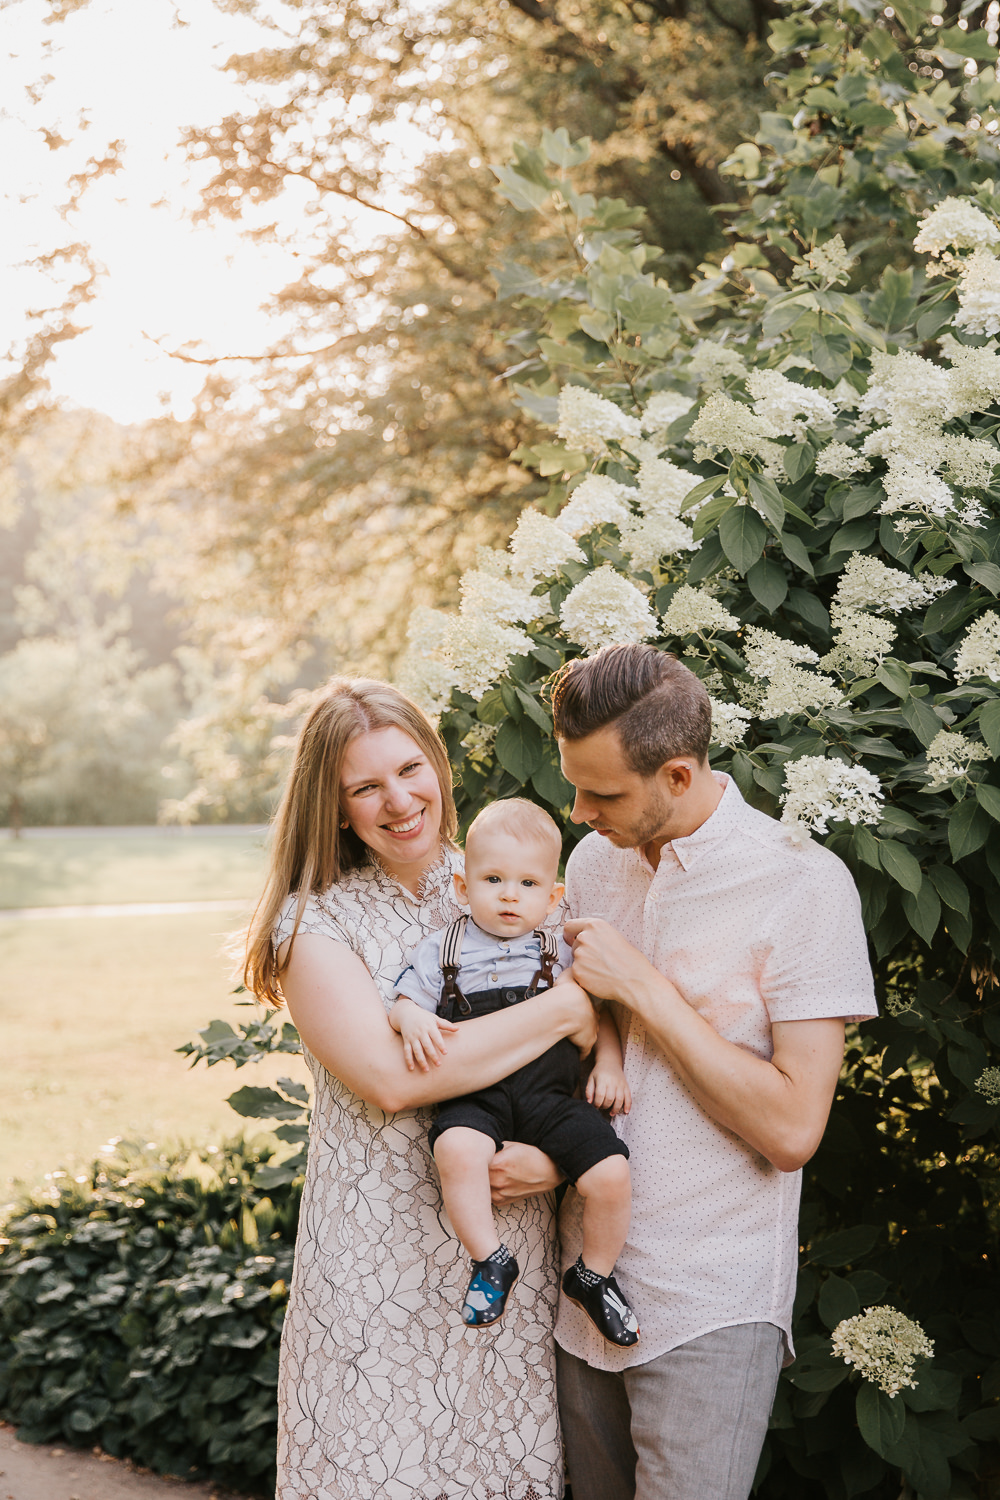 family of 3 standing in high park, setting golden sun behind them, mom carrying 8 month old blonde baby boy and smiling at camera,dad looking at son -Newmarket Lifestyle Photos